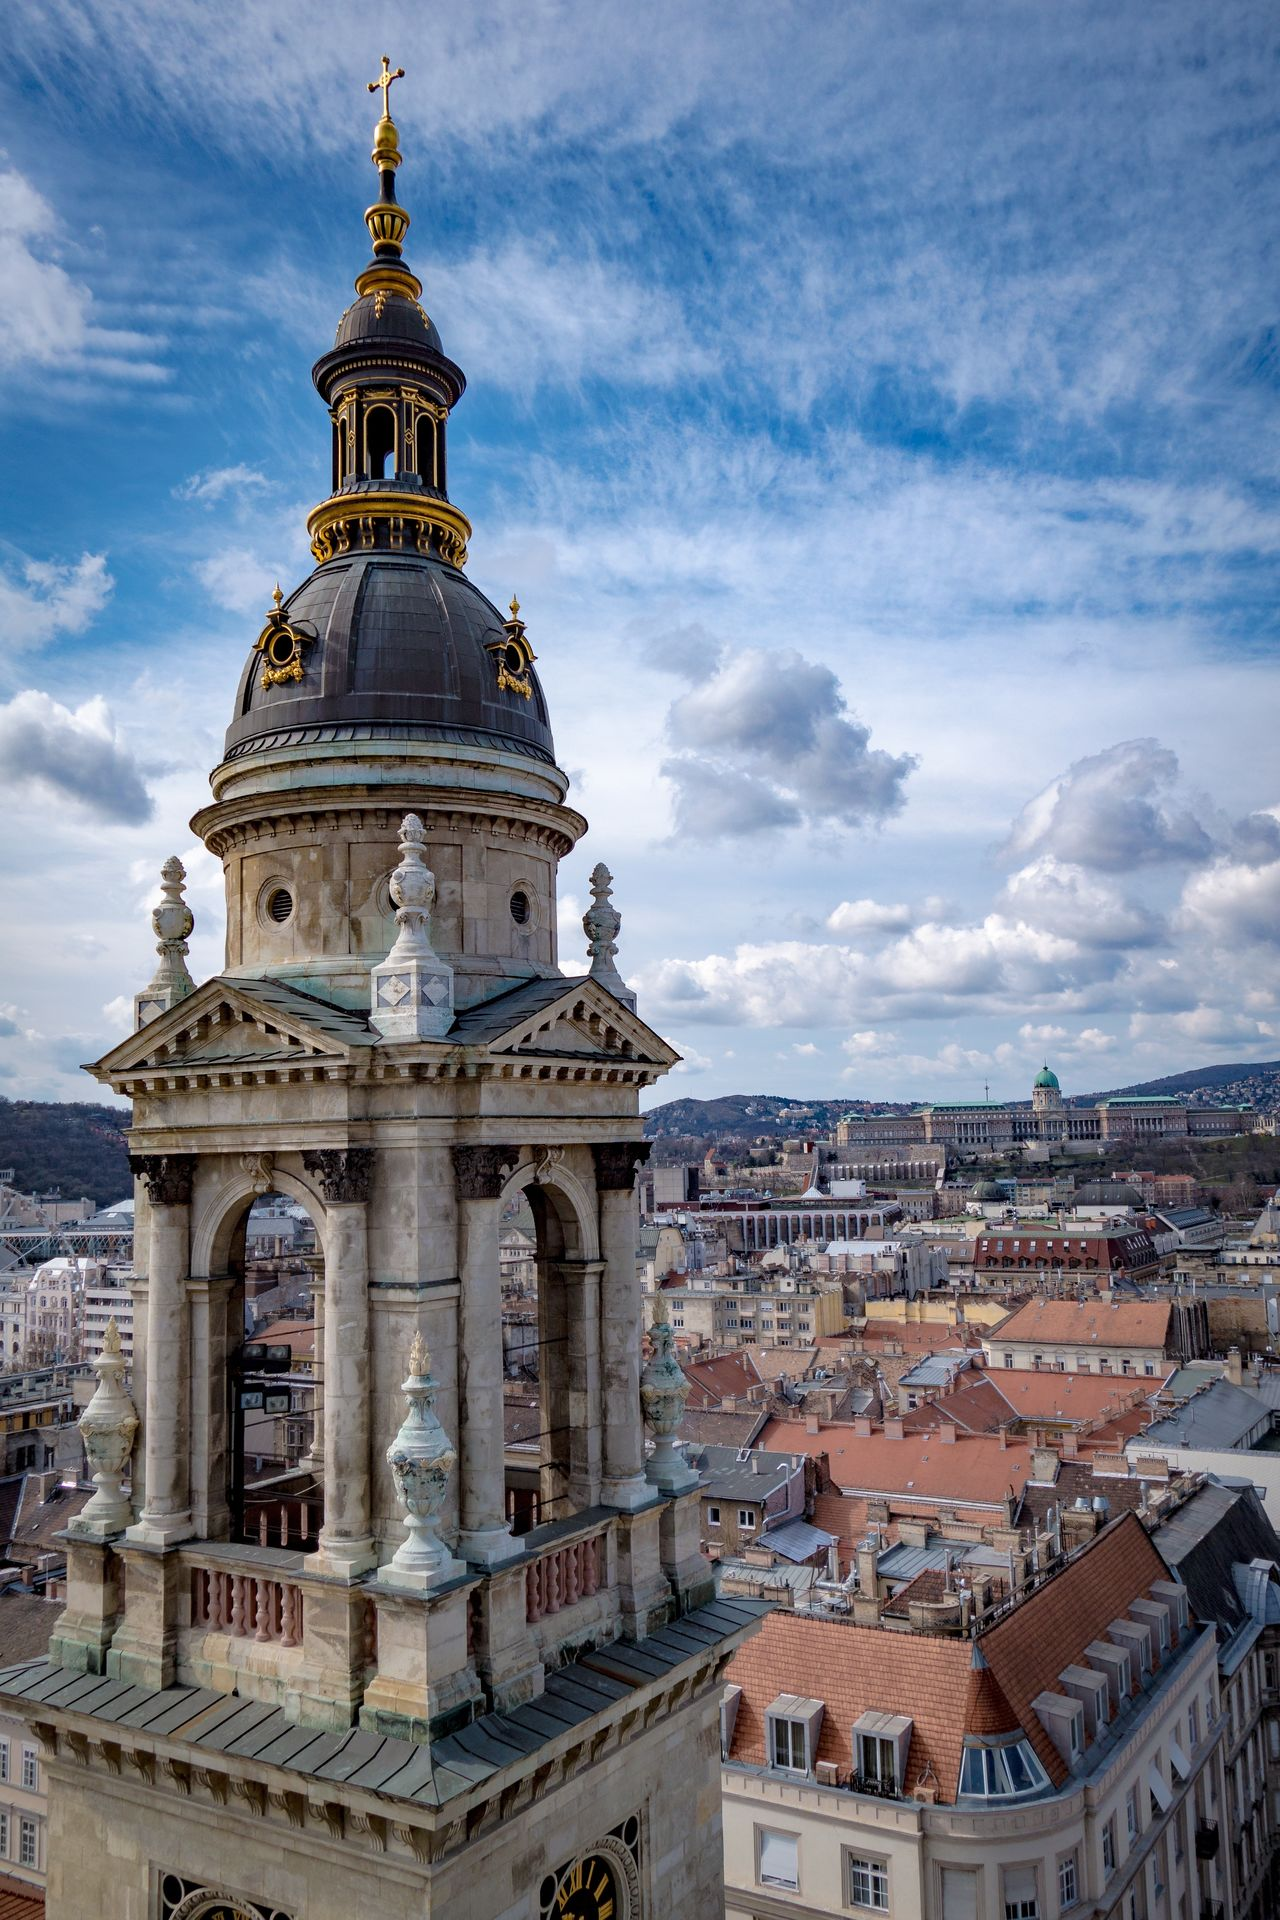 Architecture Building Exterior Built Structure City Cityscape Cloud - Sky Day Dome Gold Gold Colored No People Outdoors Religion Sky Travel Destinations